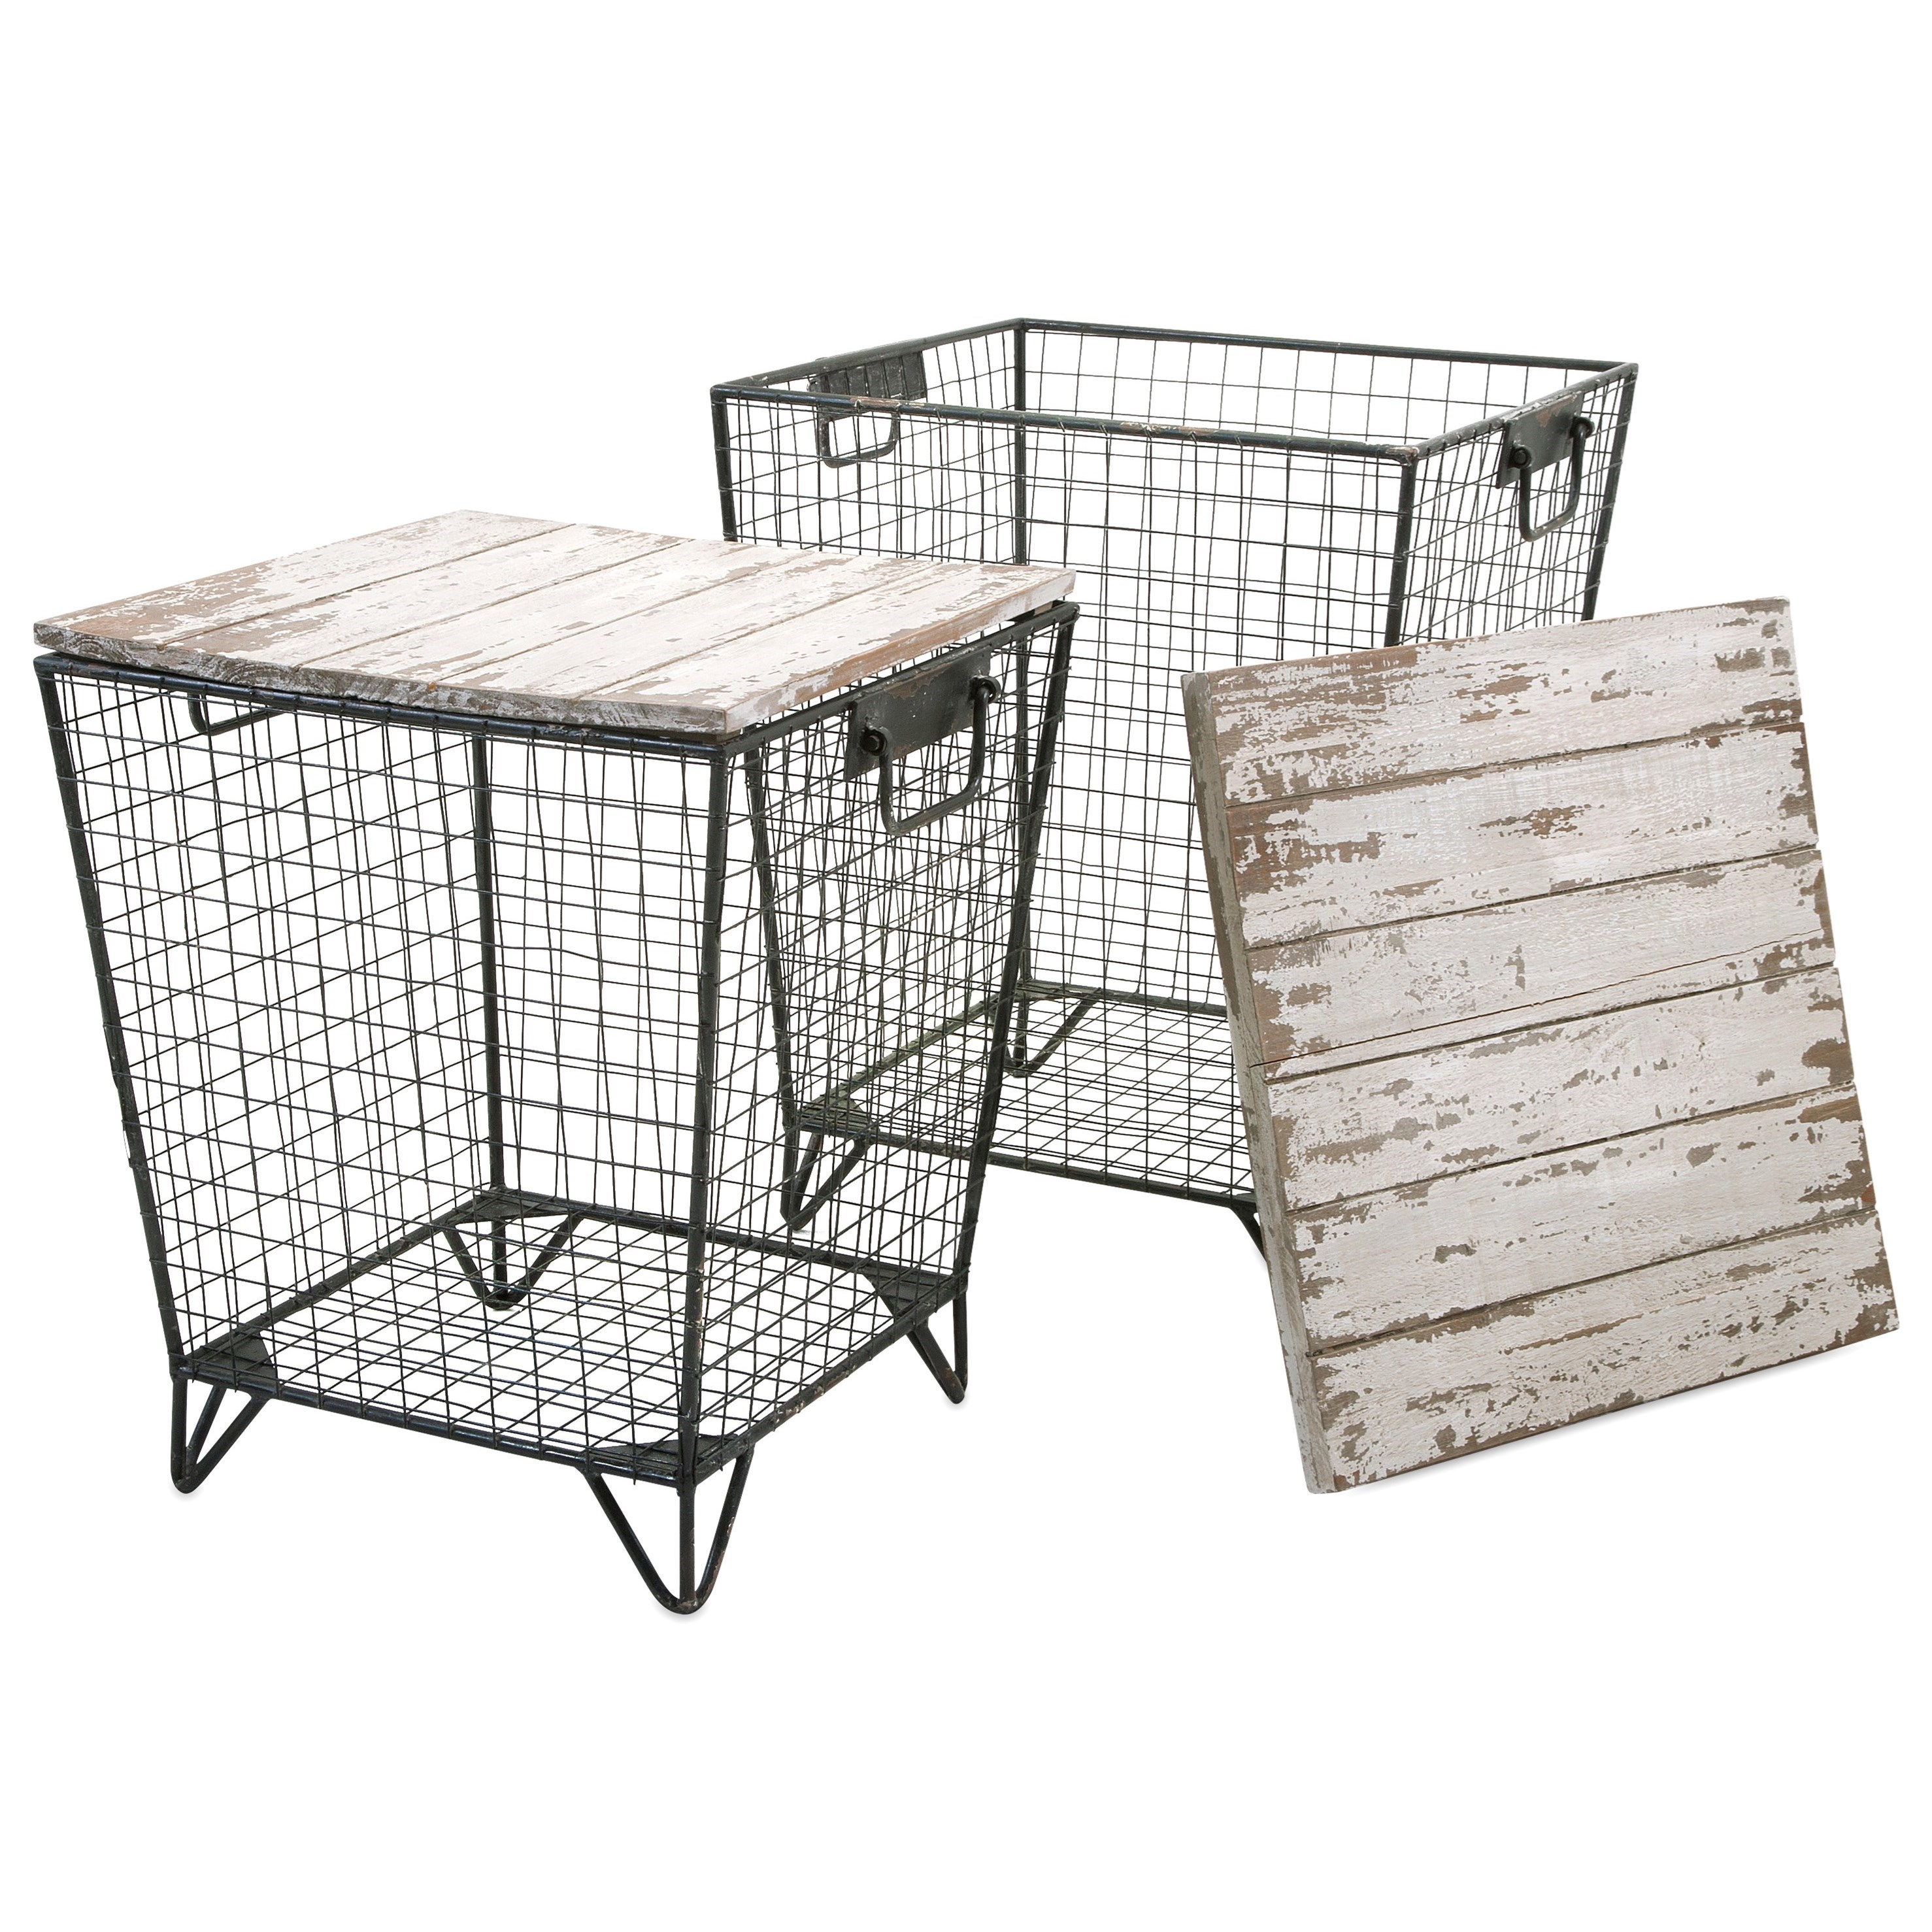 Accent Tables and Cabinets Ava Cage Tables - Set of 2 by IMAX Worldwide Home at Alison Craig Home Furnishings